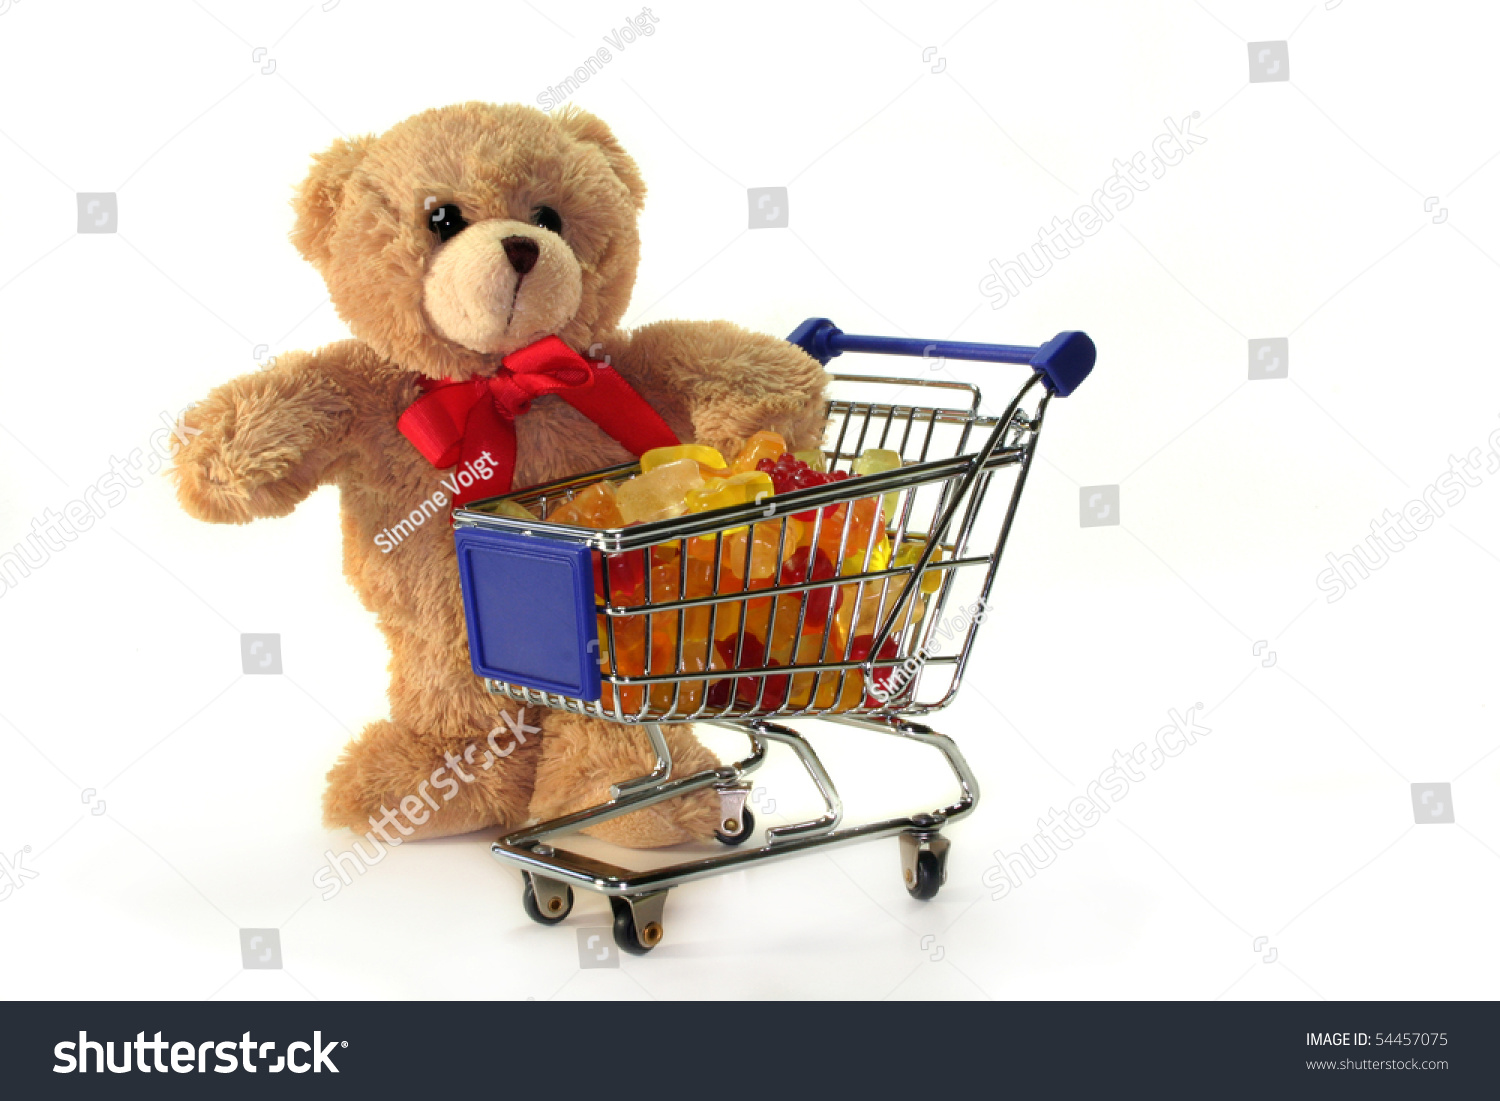 Teddy Laden teddy shopping carts laden colorful gummy stock photo 54457075